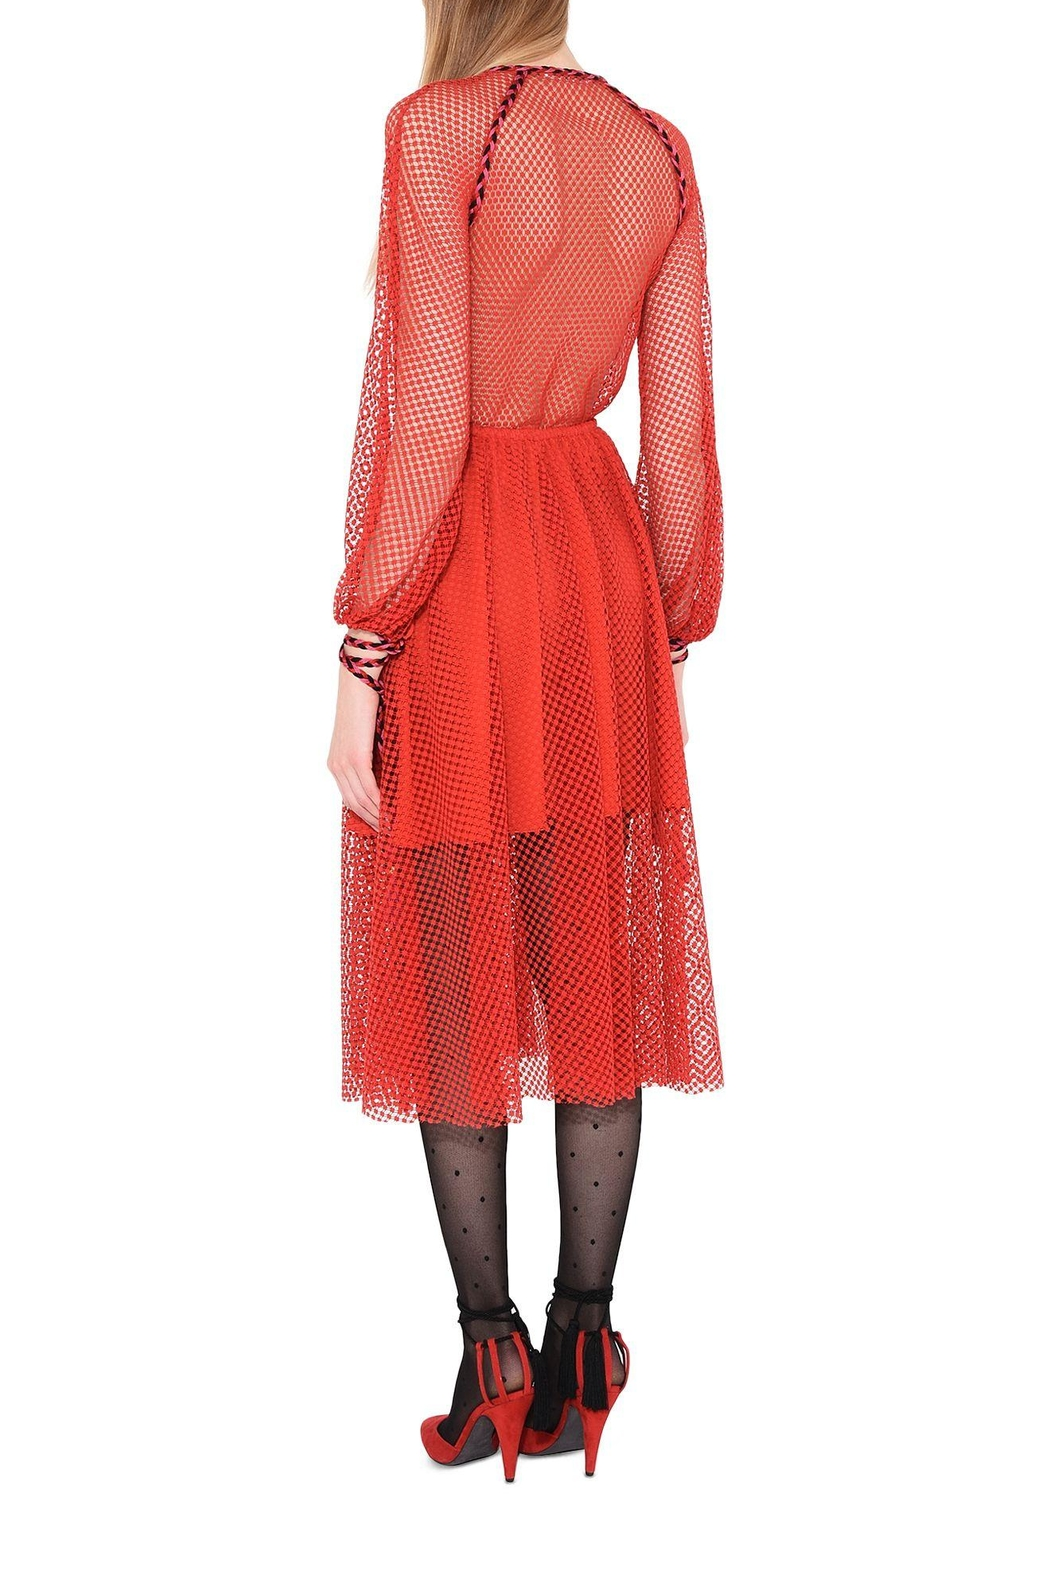 Philosophy di Lorenzo Serafini Red Lace Dress - Front Full Image